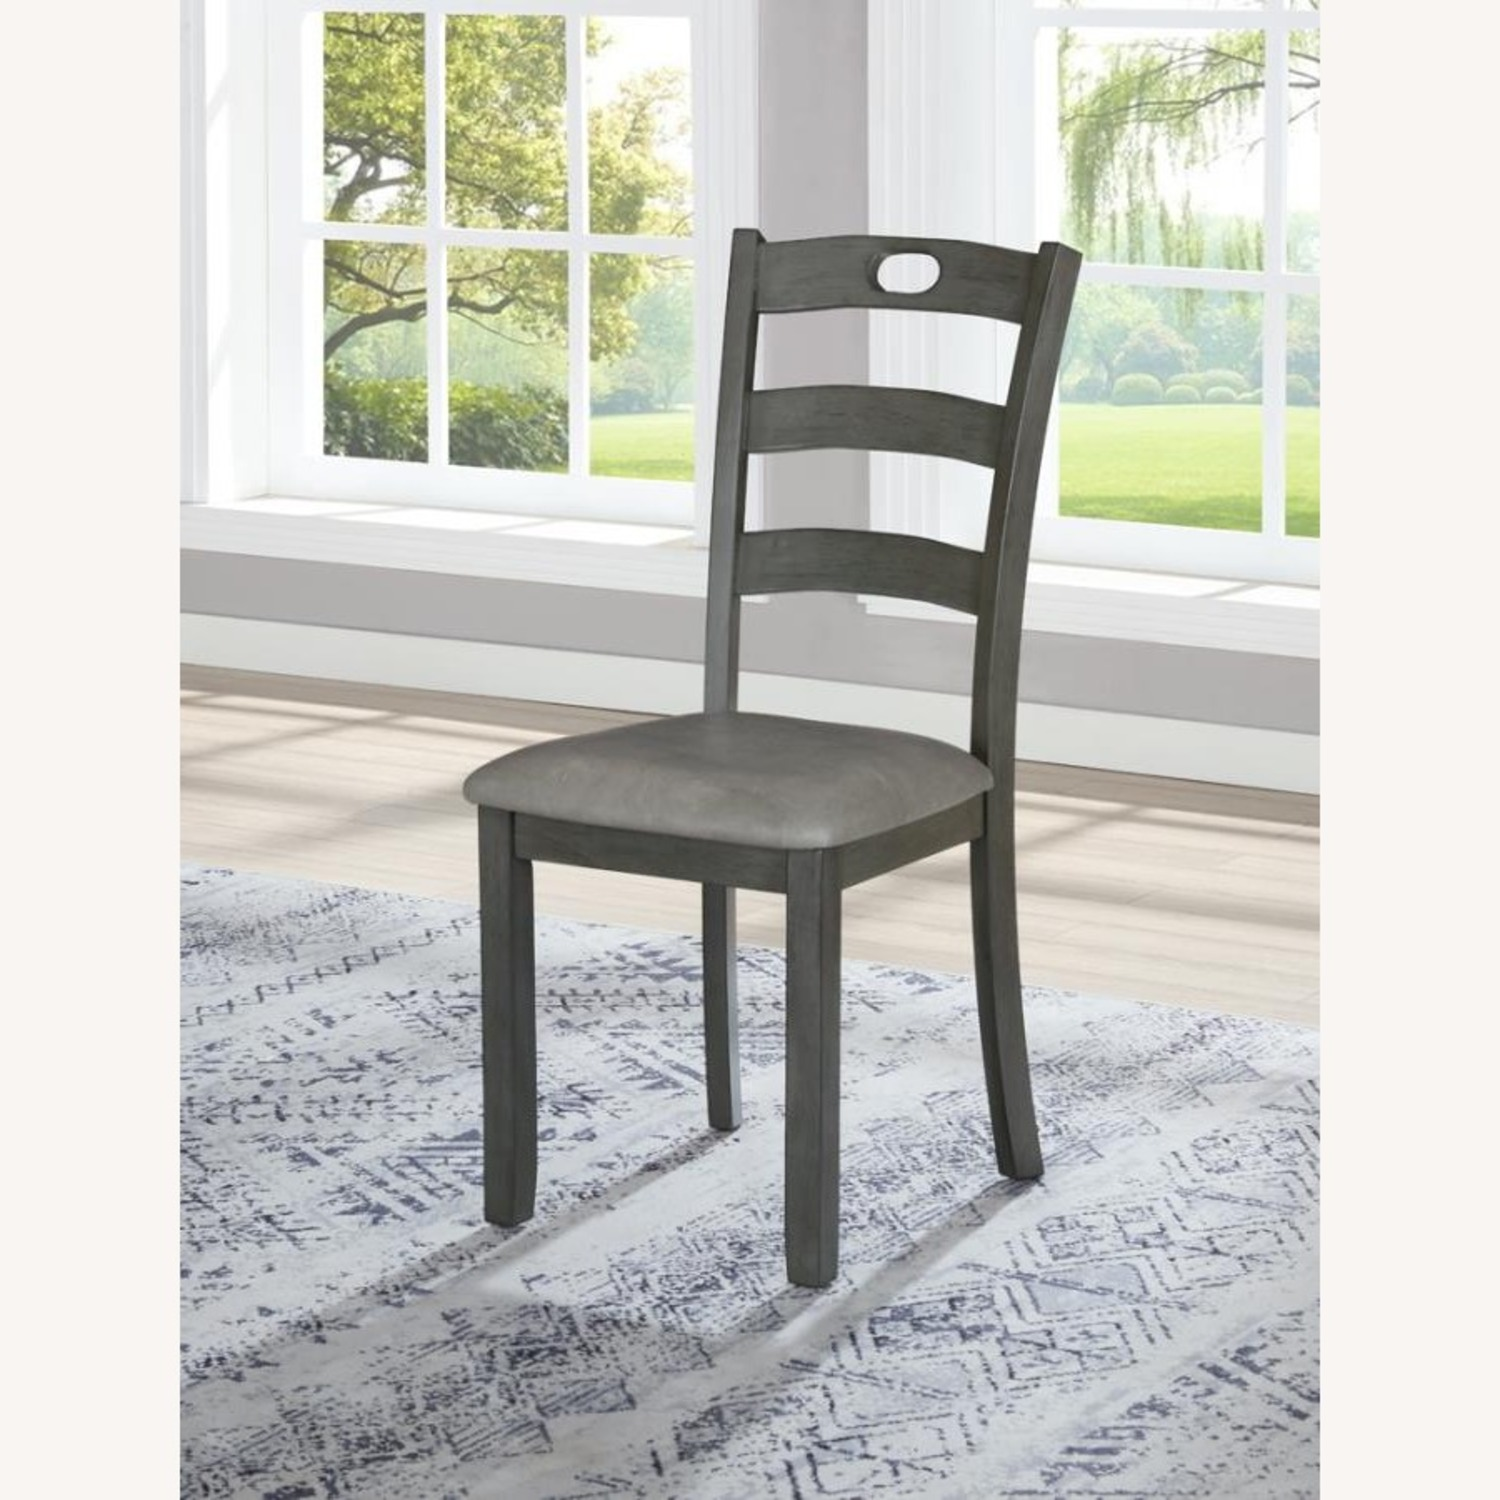 5-Piece Dining Set In Grey Wood & Fabric Finish - image-3